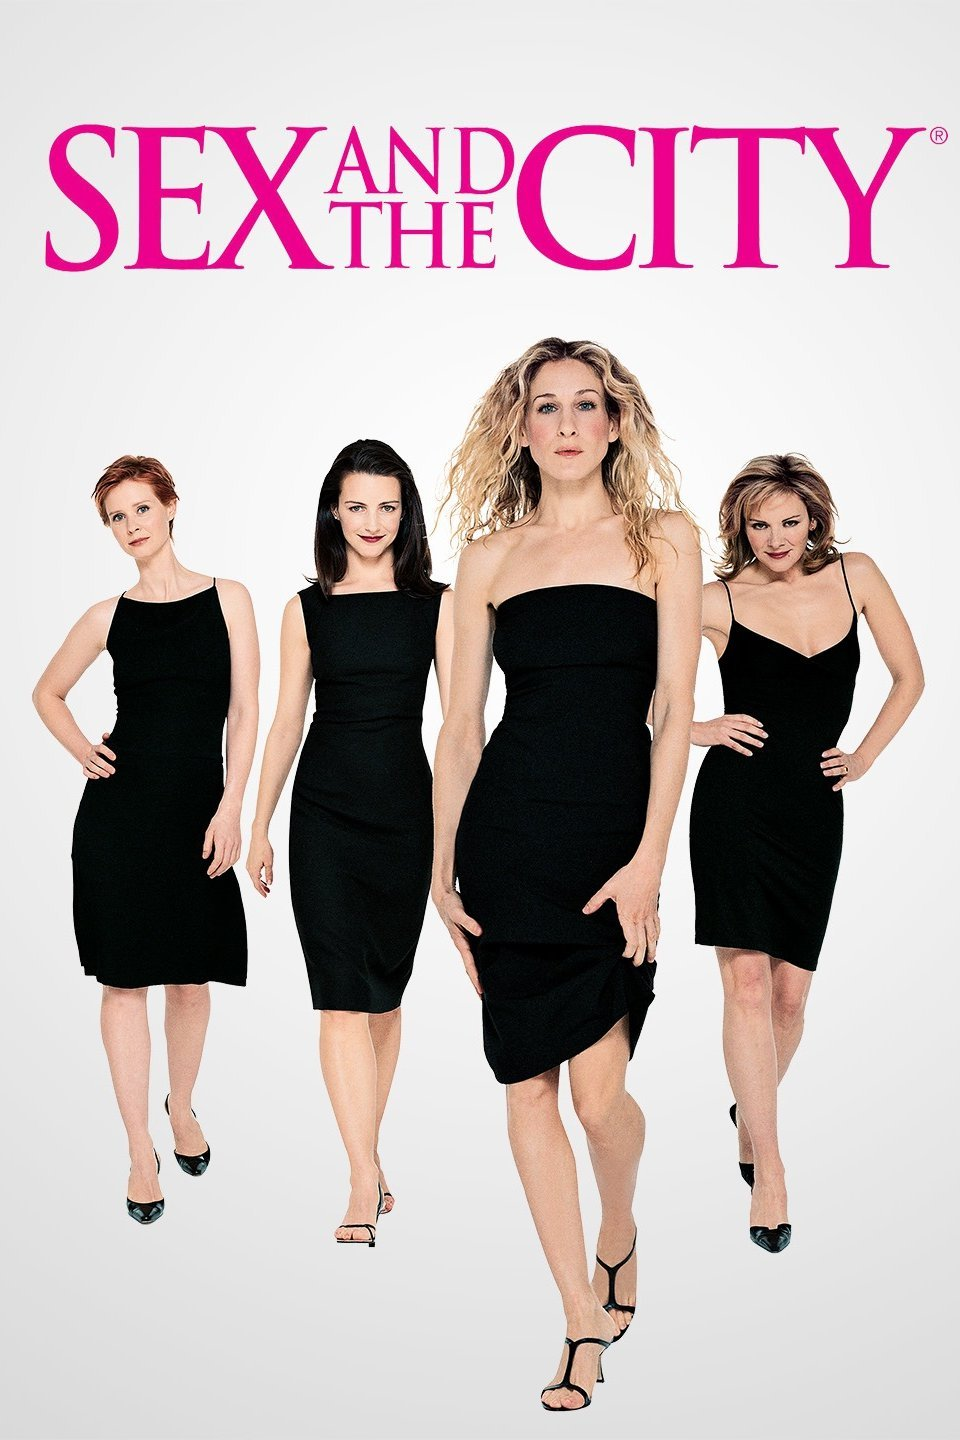 Sex and the city episode 25